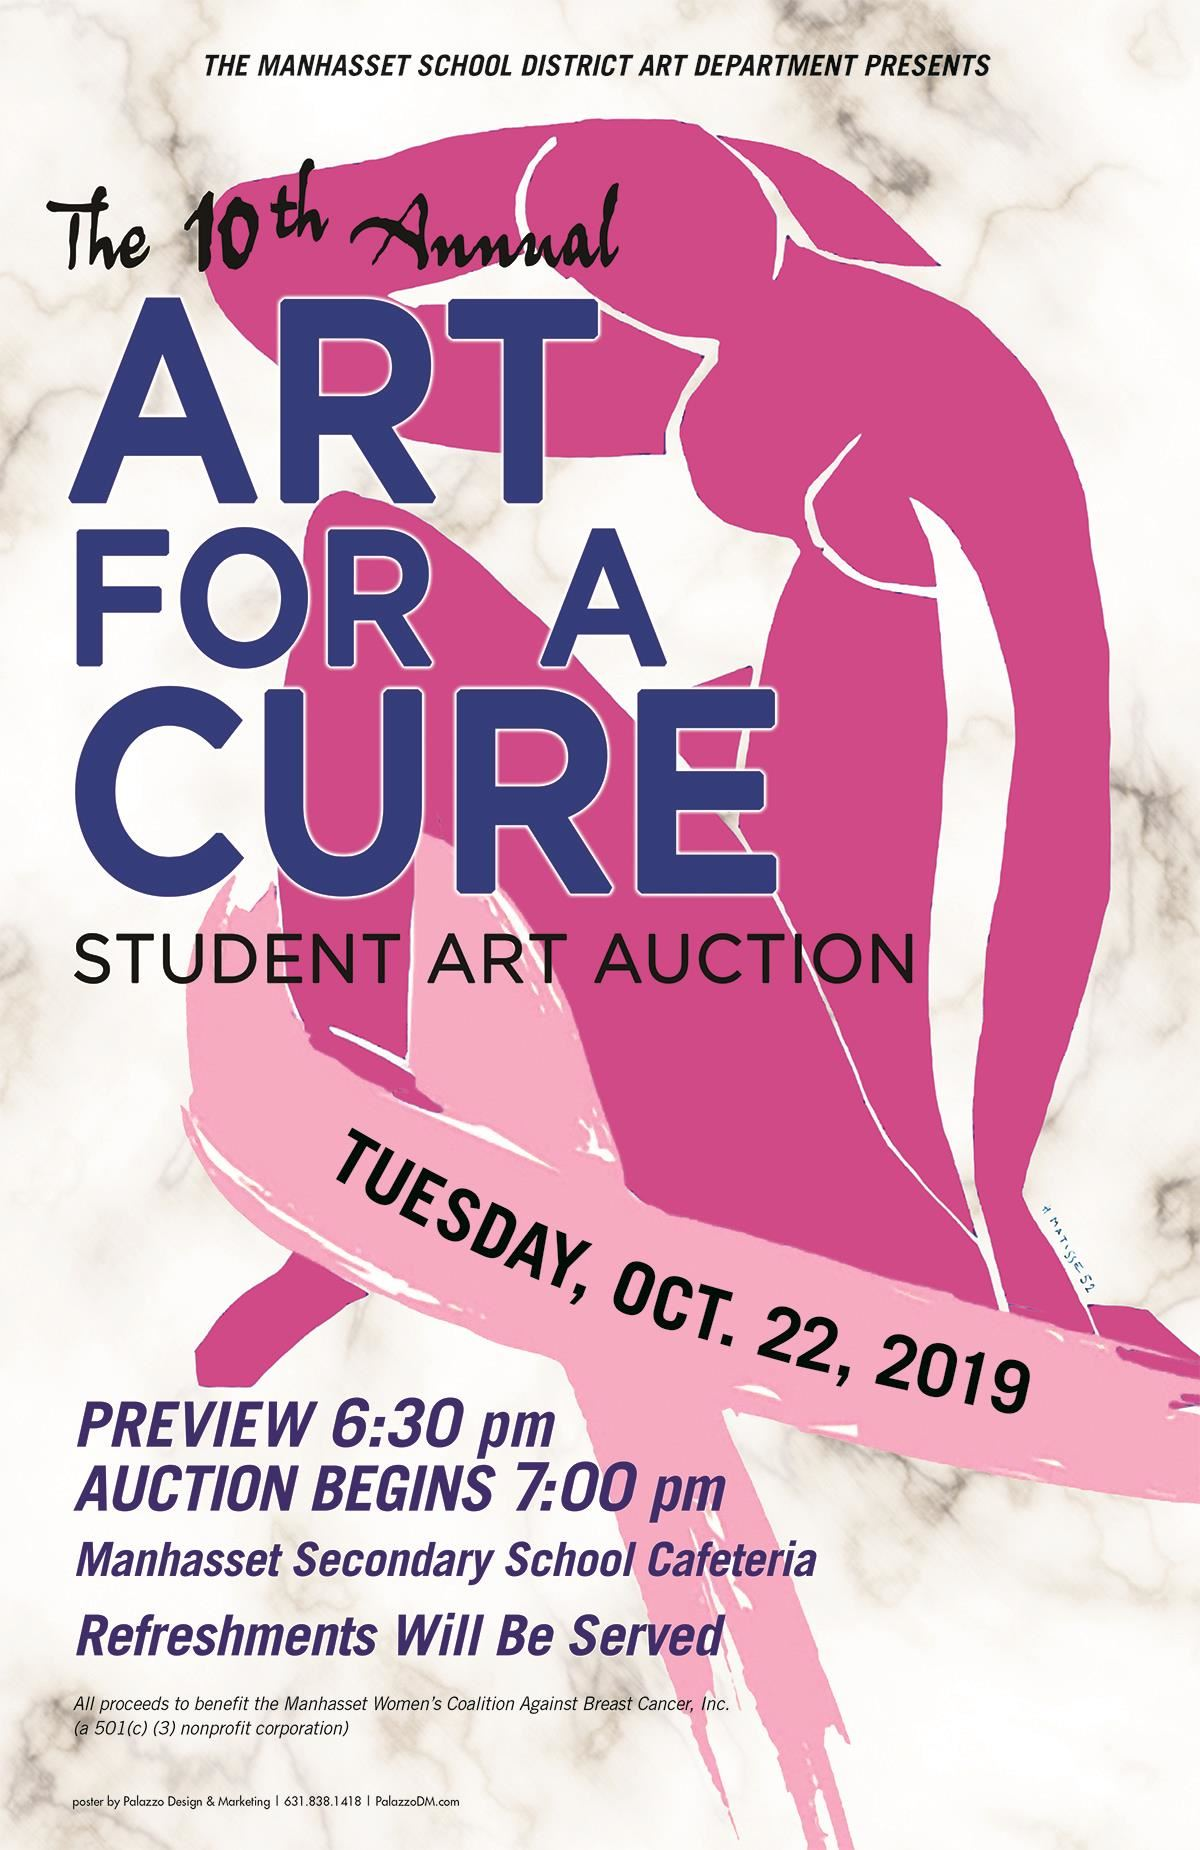 Art for a Cure Auction Oct. 22